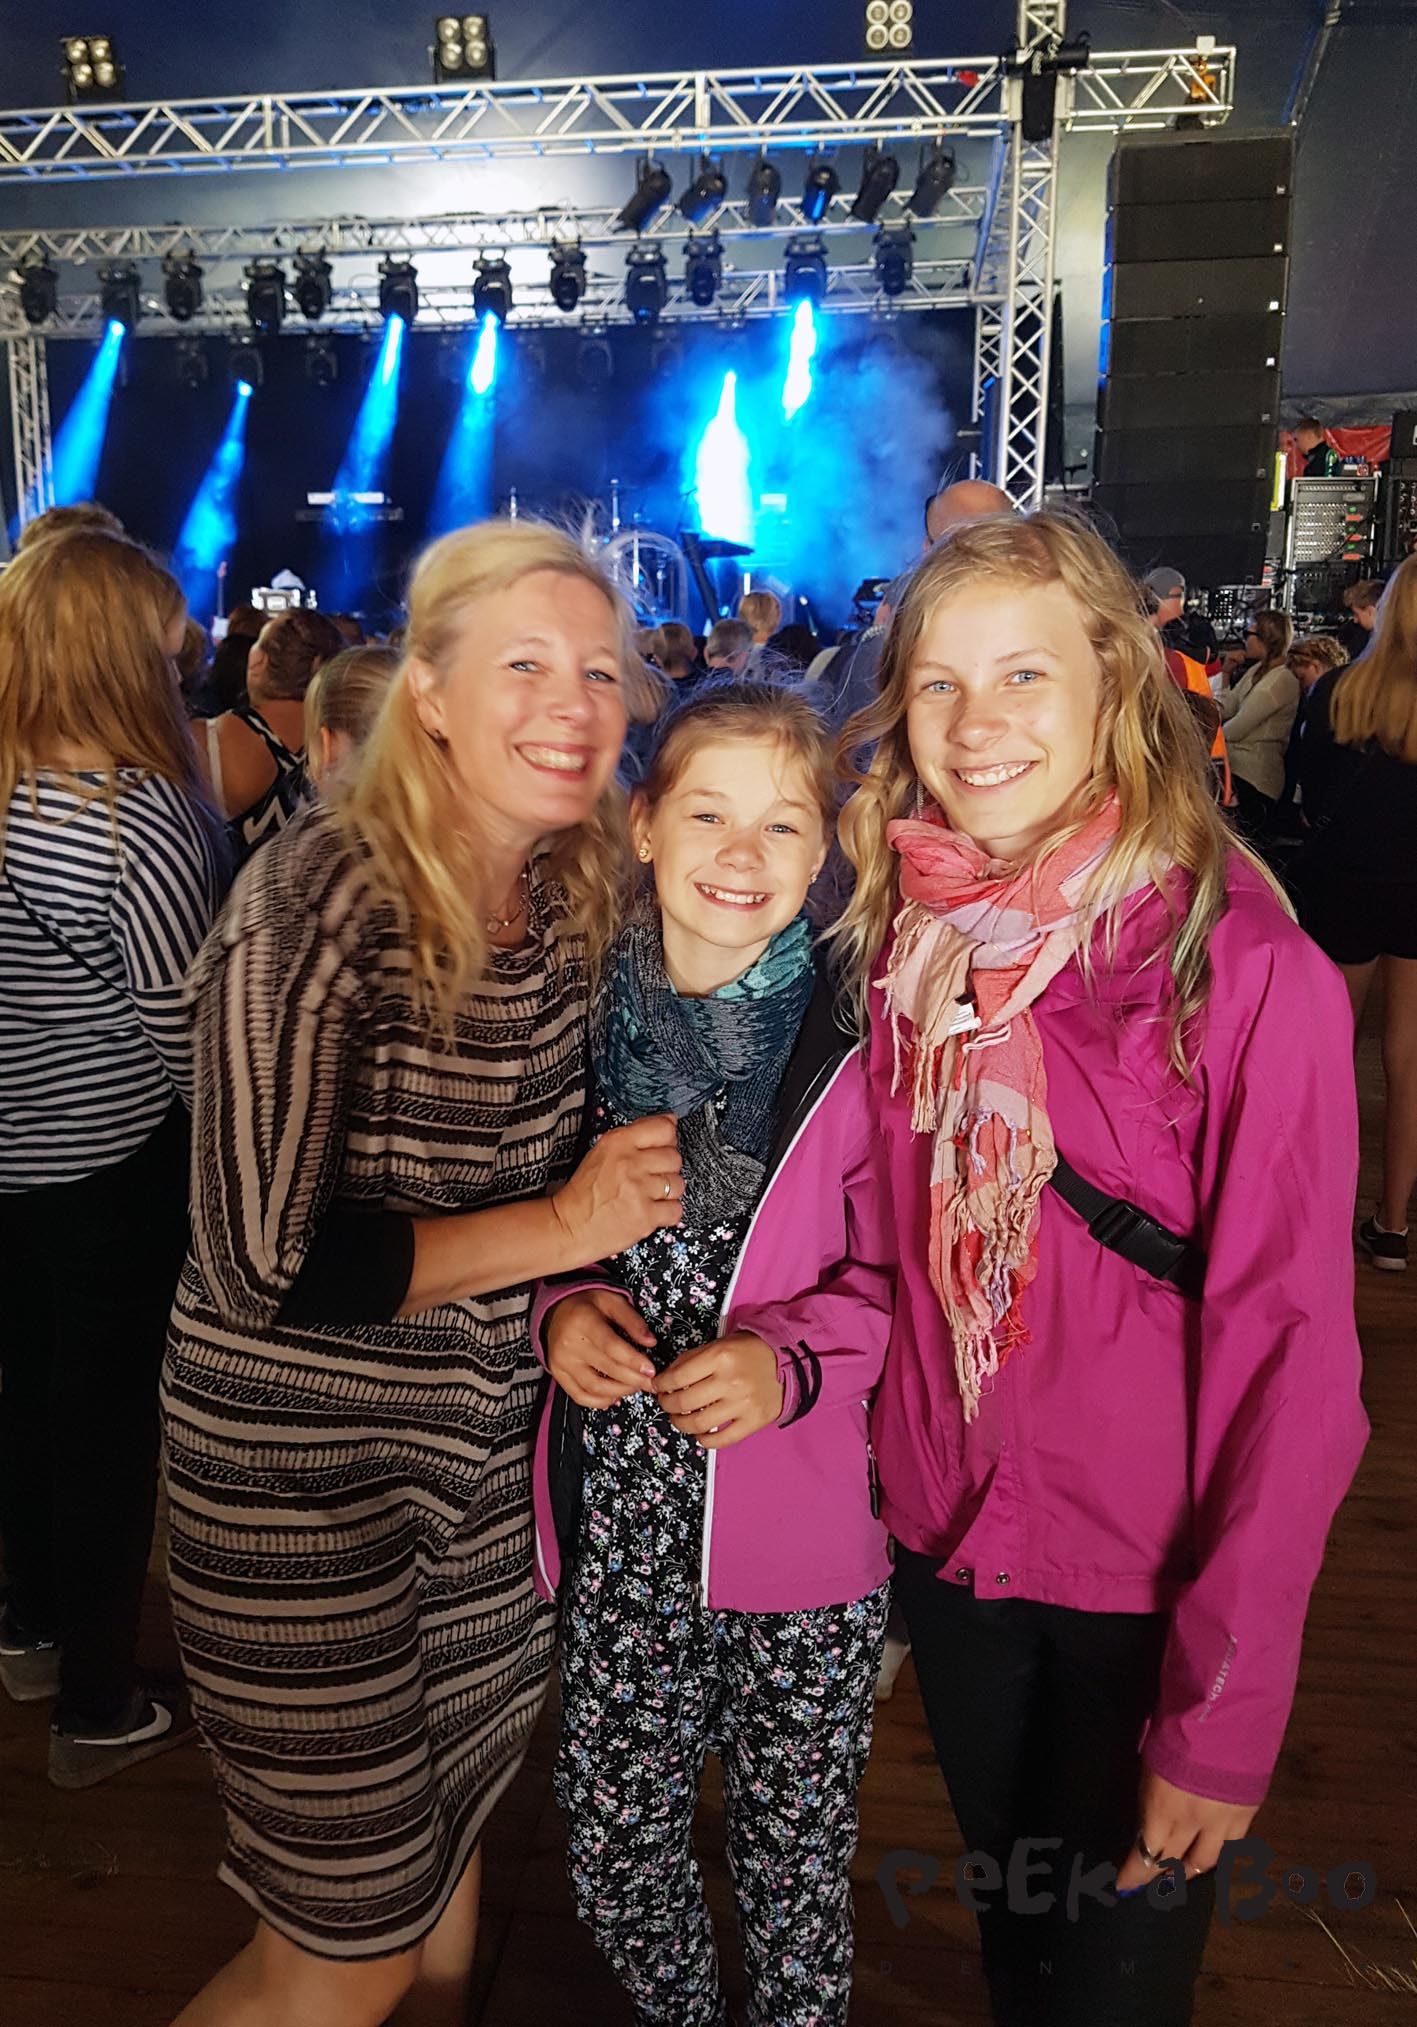 Me and my daughters at Vig festival 2016.